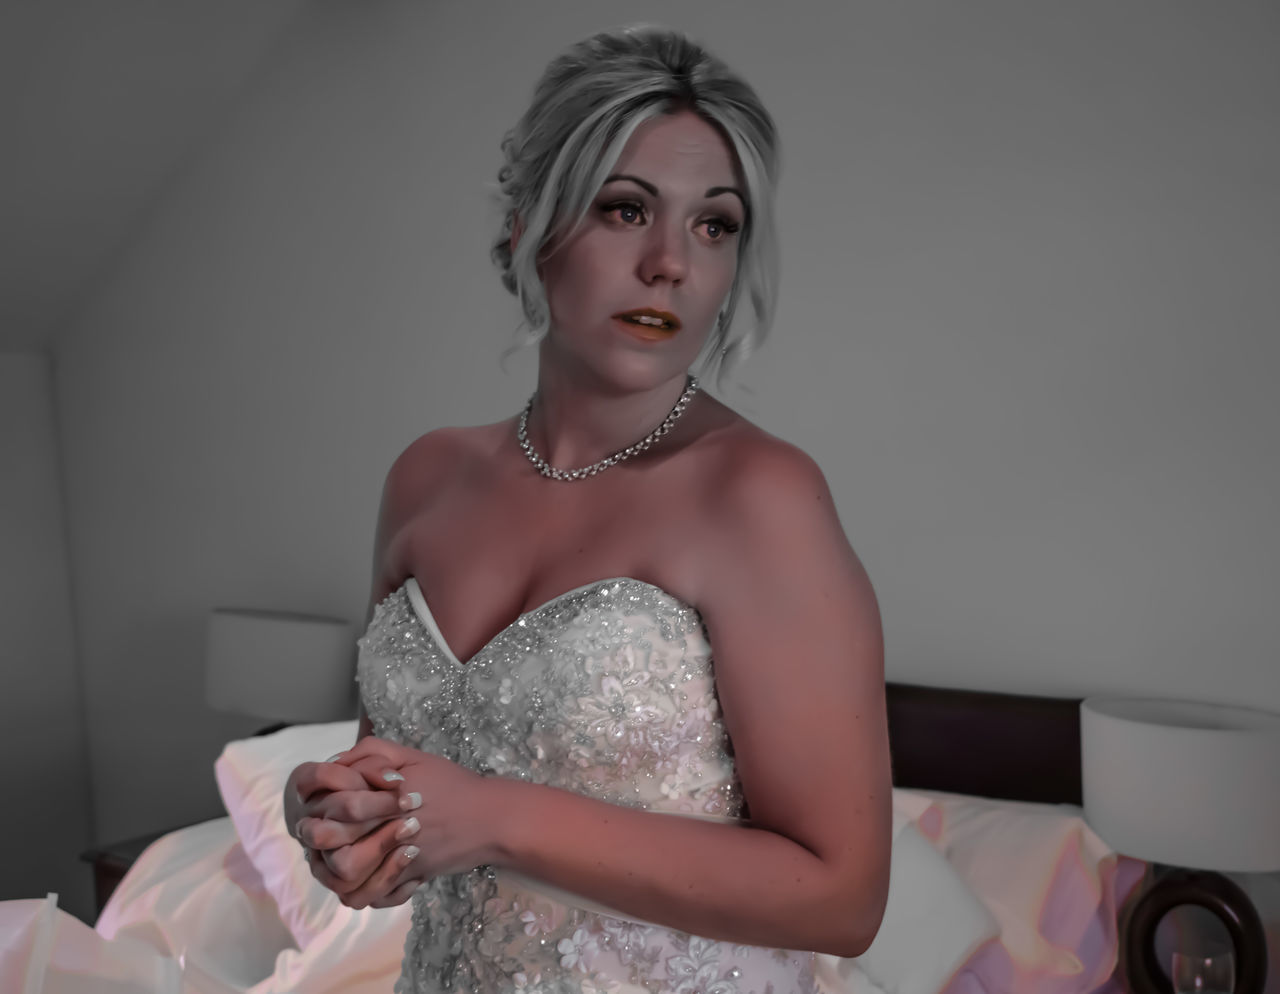 from last years wedding remixed Beautiful People Beautiful Woman Beauty Blackandwhite Blond Hair Bride Colour Pick Effect Eye4photography  EyeEm Best Edits EyeEm Best Shots EyeEm Gallery EyeEmBestPics Fashion Glamour Looking At Camera Memories Portrait Wedding Wedding Dress